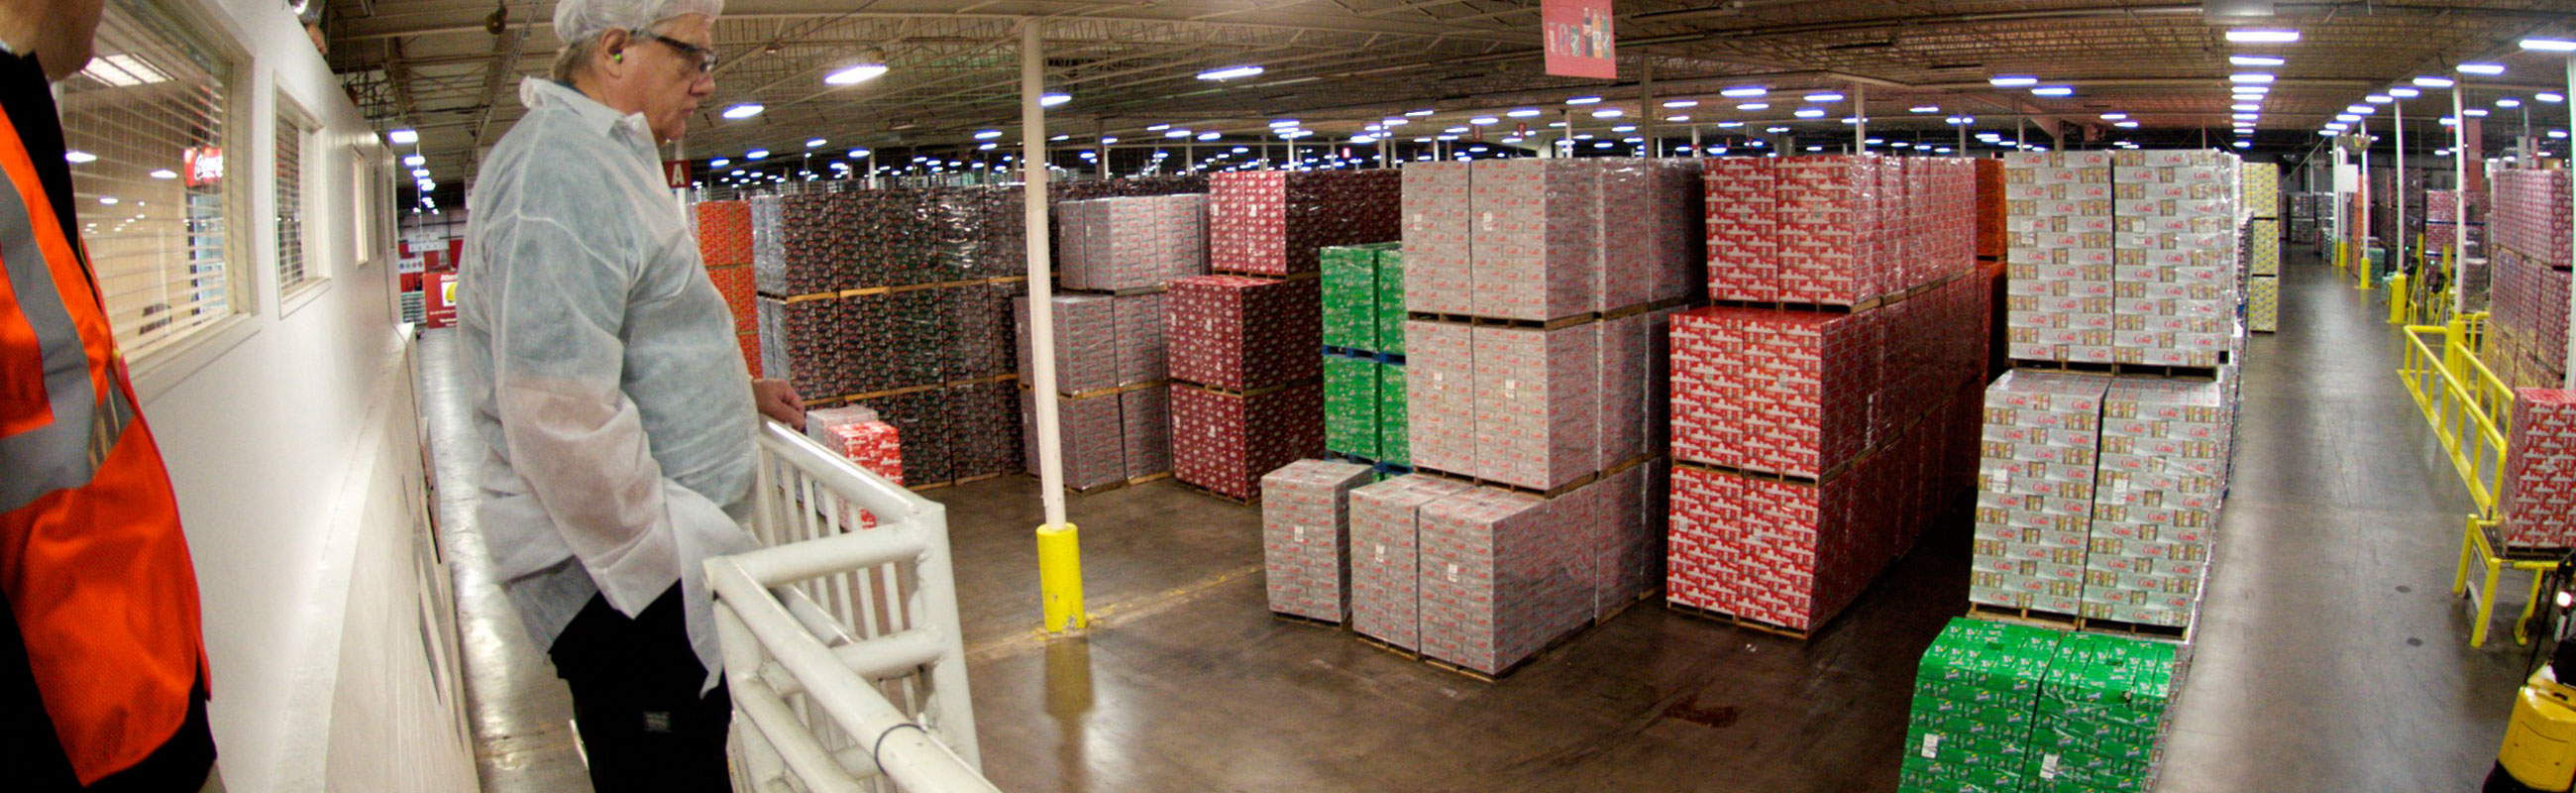 Beverage industry stretch wrapping pallets